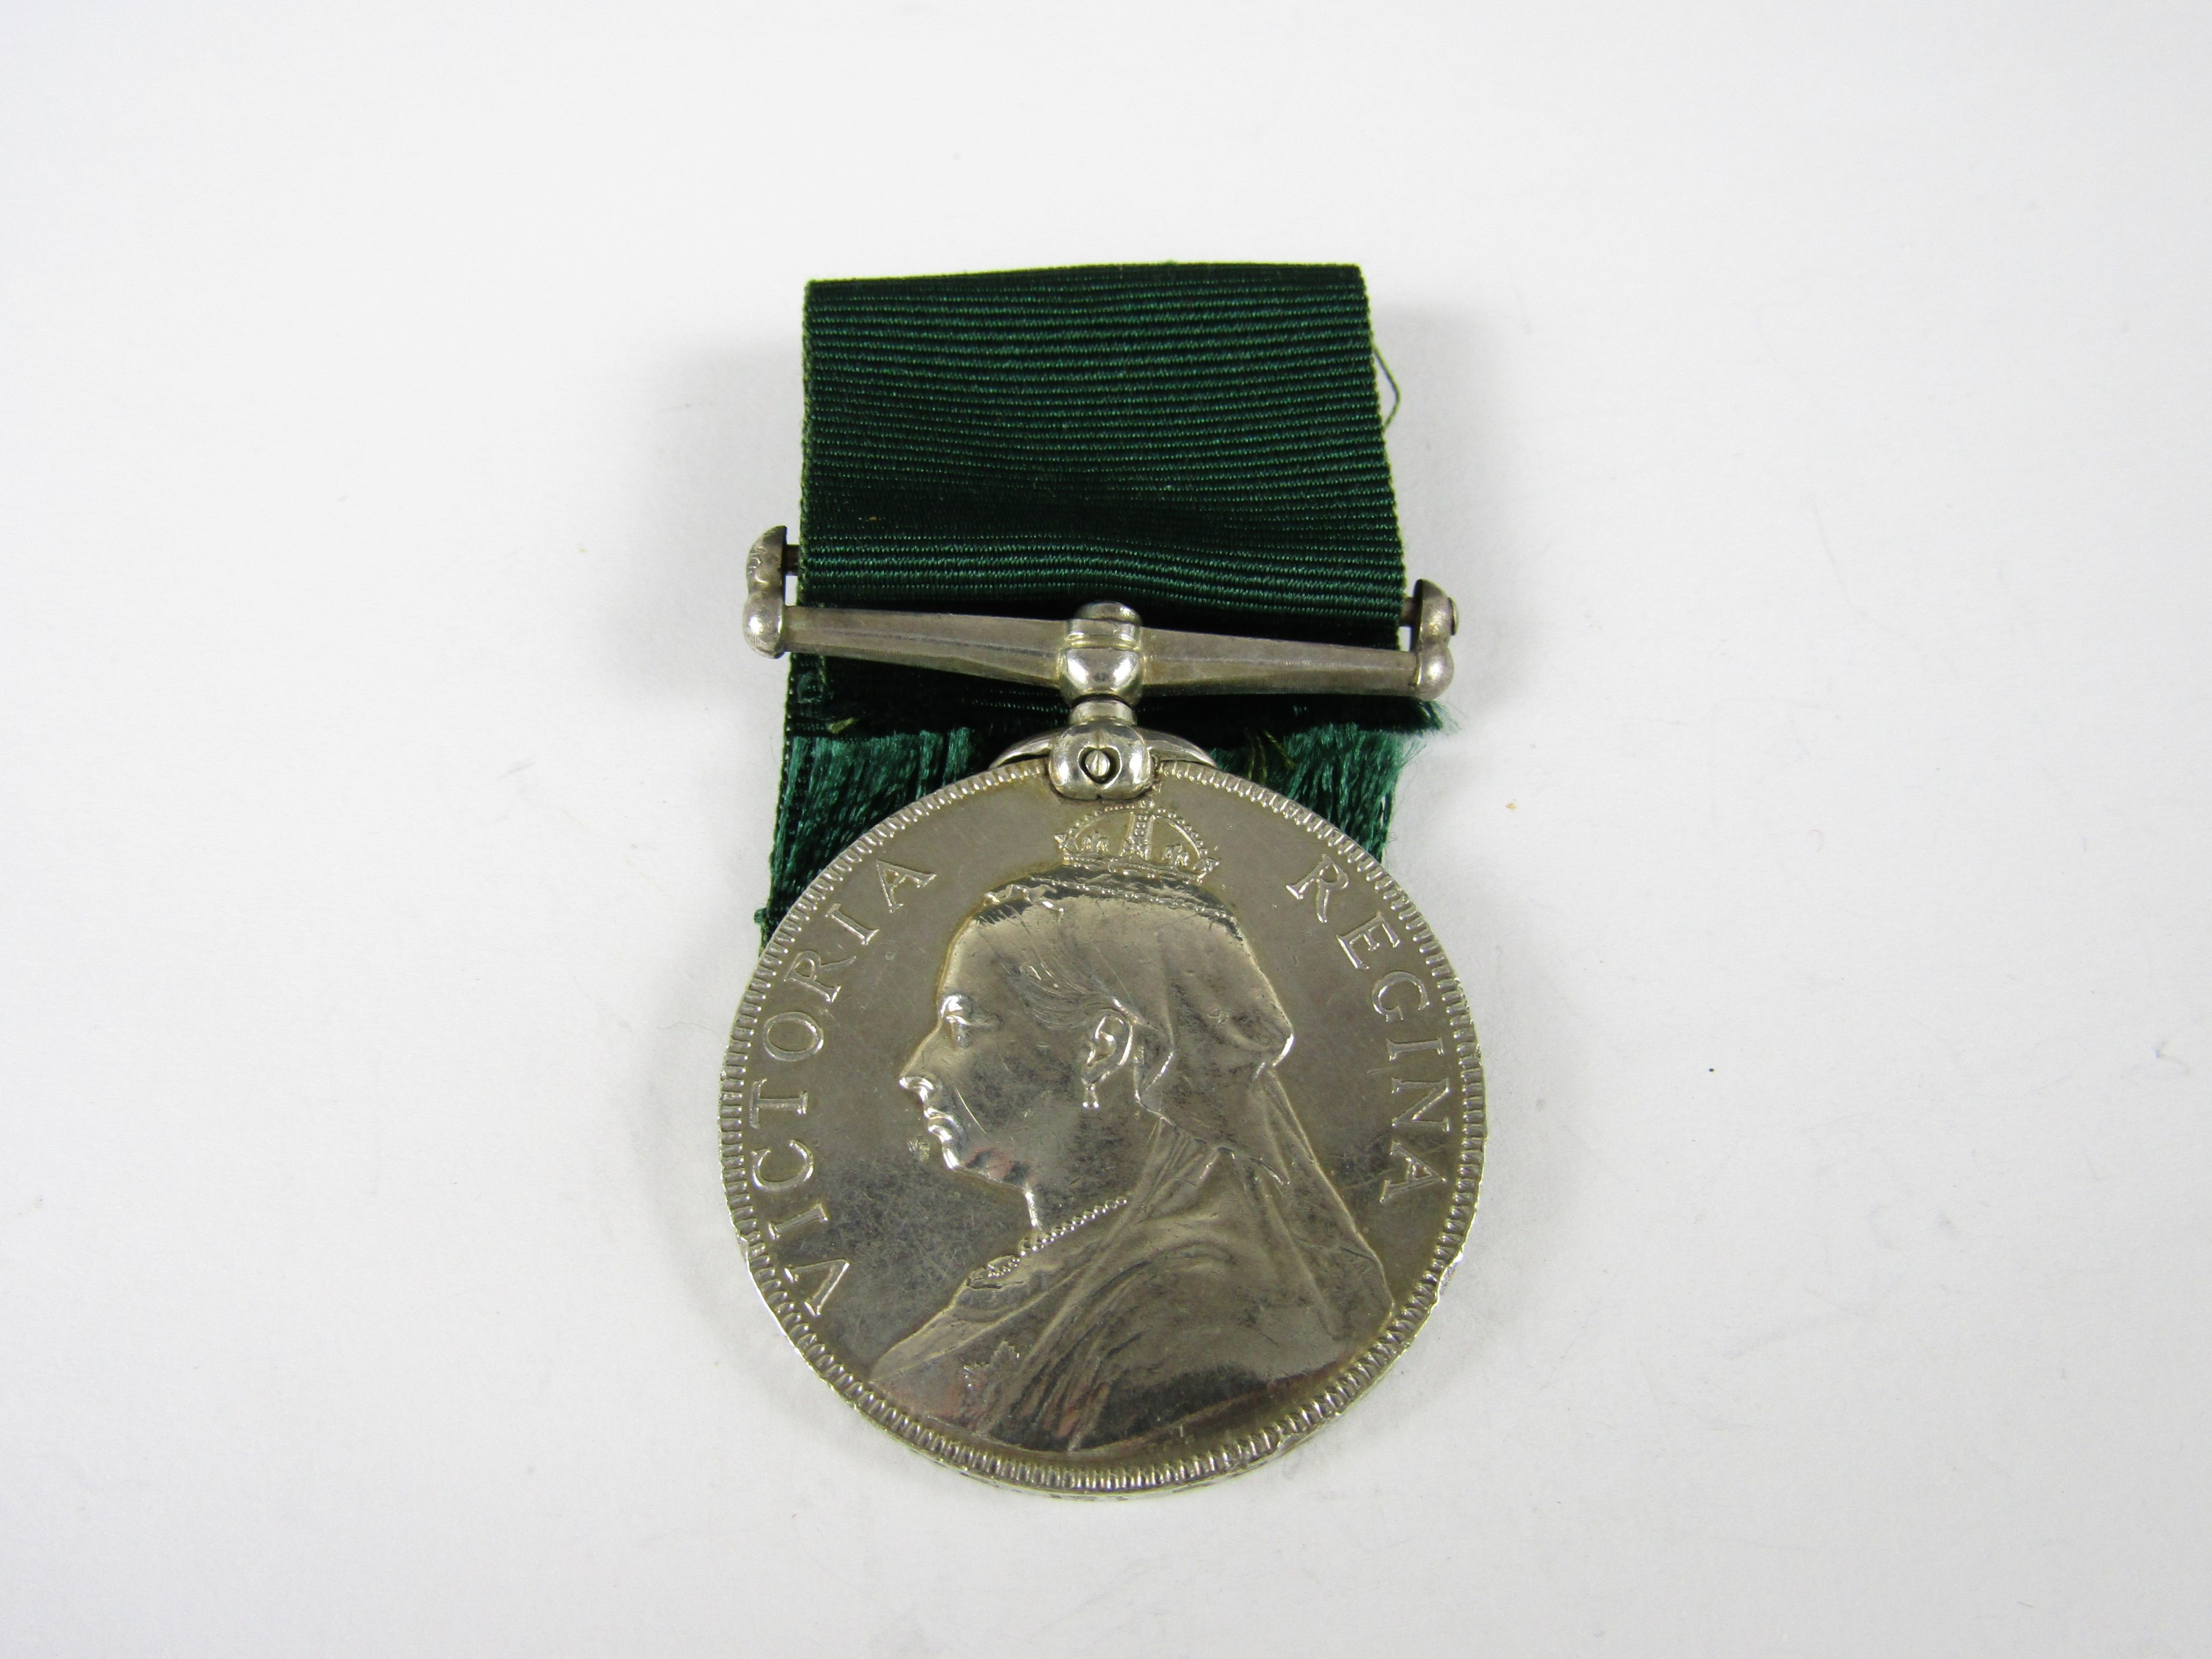 Lot 53 - A Victorian Volunteer Long Service medal to Pte J Johnstone, 1st Rox and Selk Rifle Vols, 1895